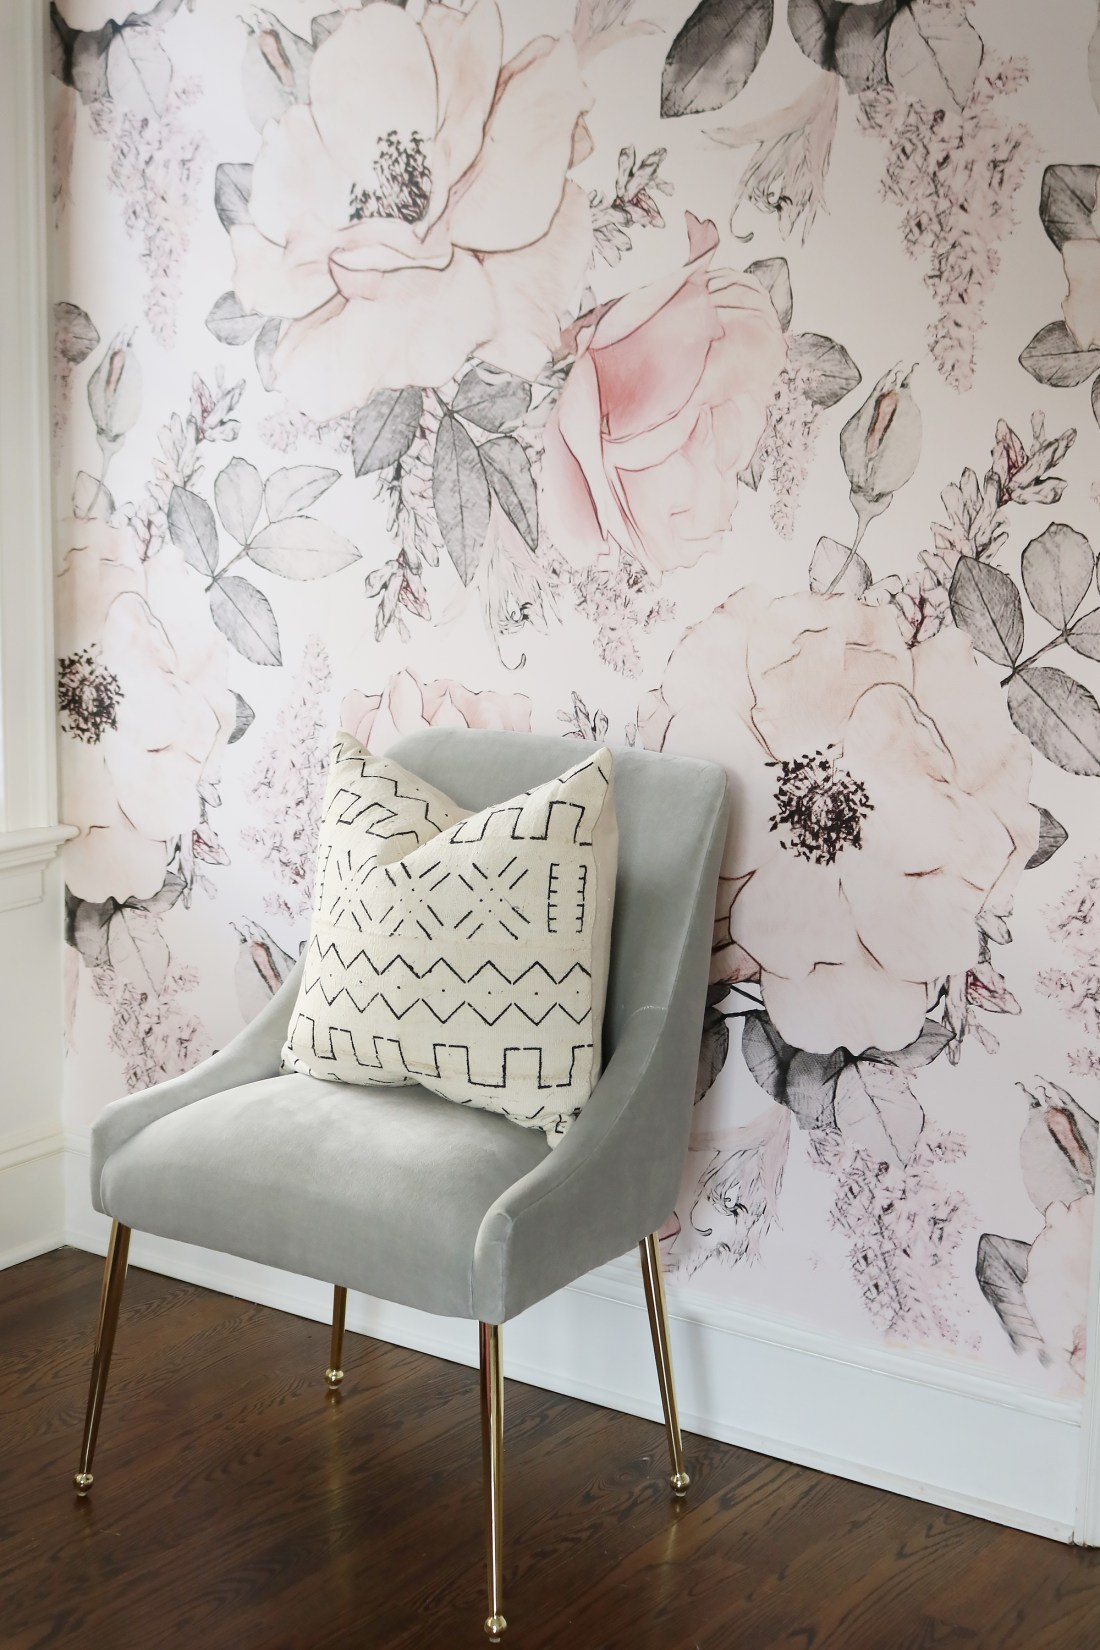 Traditional wallpaper vs. removable wallpaper and comparing the pros and cons of the two!  We are giving the our honest opinion and a few tips when using regular wallpaper or peel and stick wallpaper. || Darling Darleen Top Lifestyle CT Blogger #darlingdarleen #darleenmeier